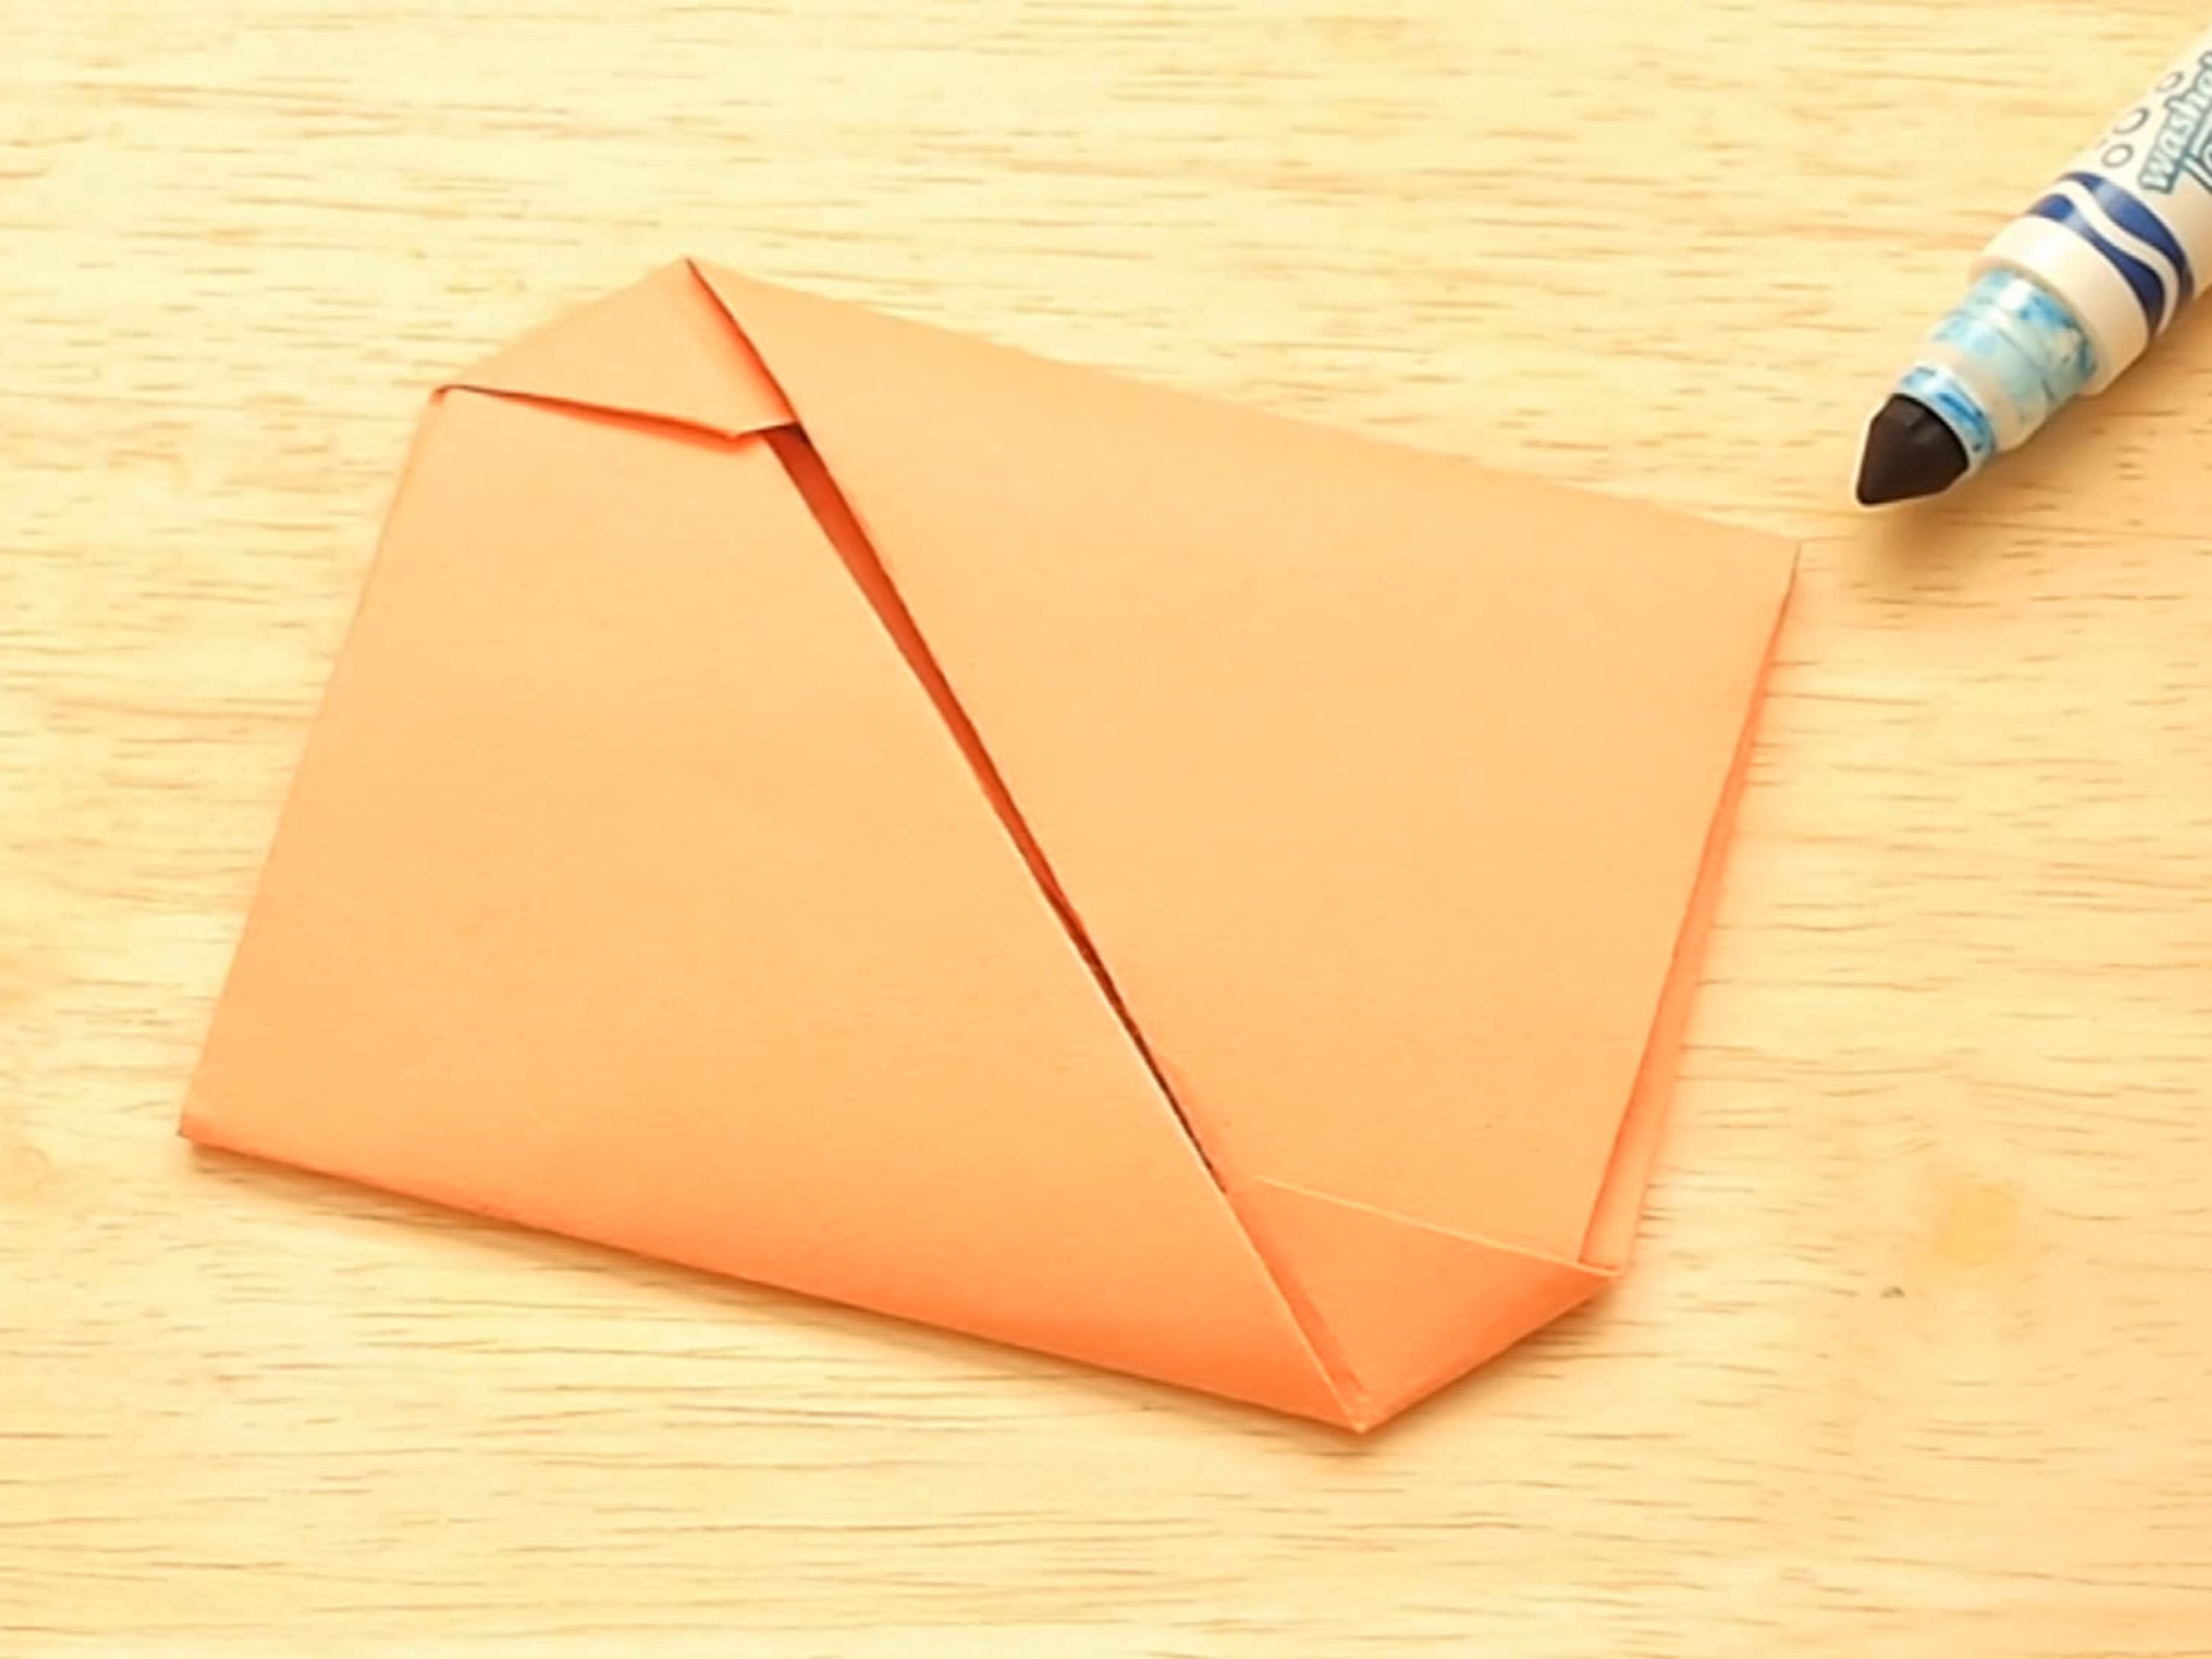 Envelope Origami Easy How To Fold An Origami Envelope With Pictures Wikihow